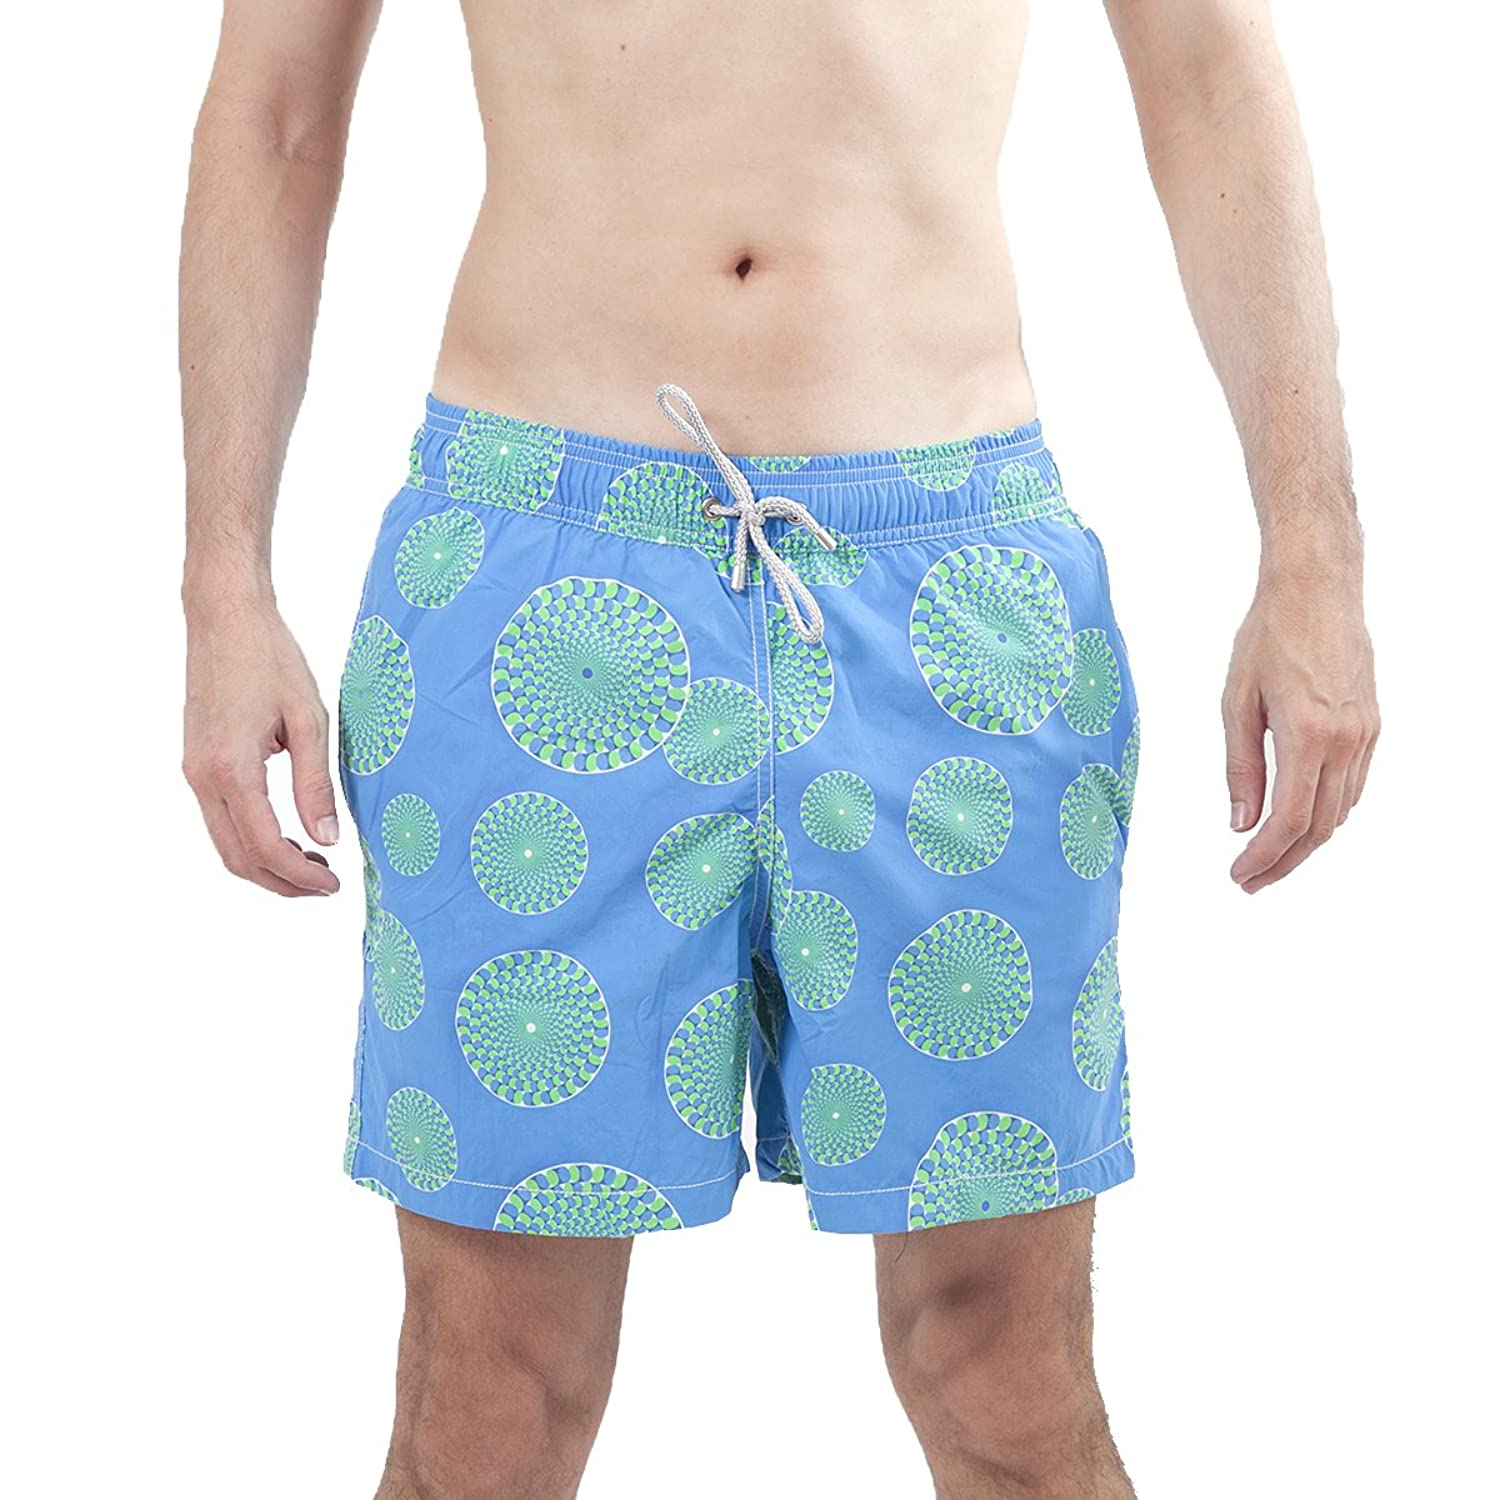 Pat&Can Men's Swimming Shorts